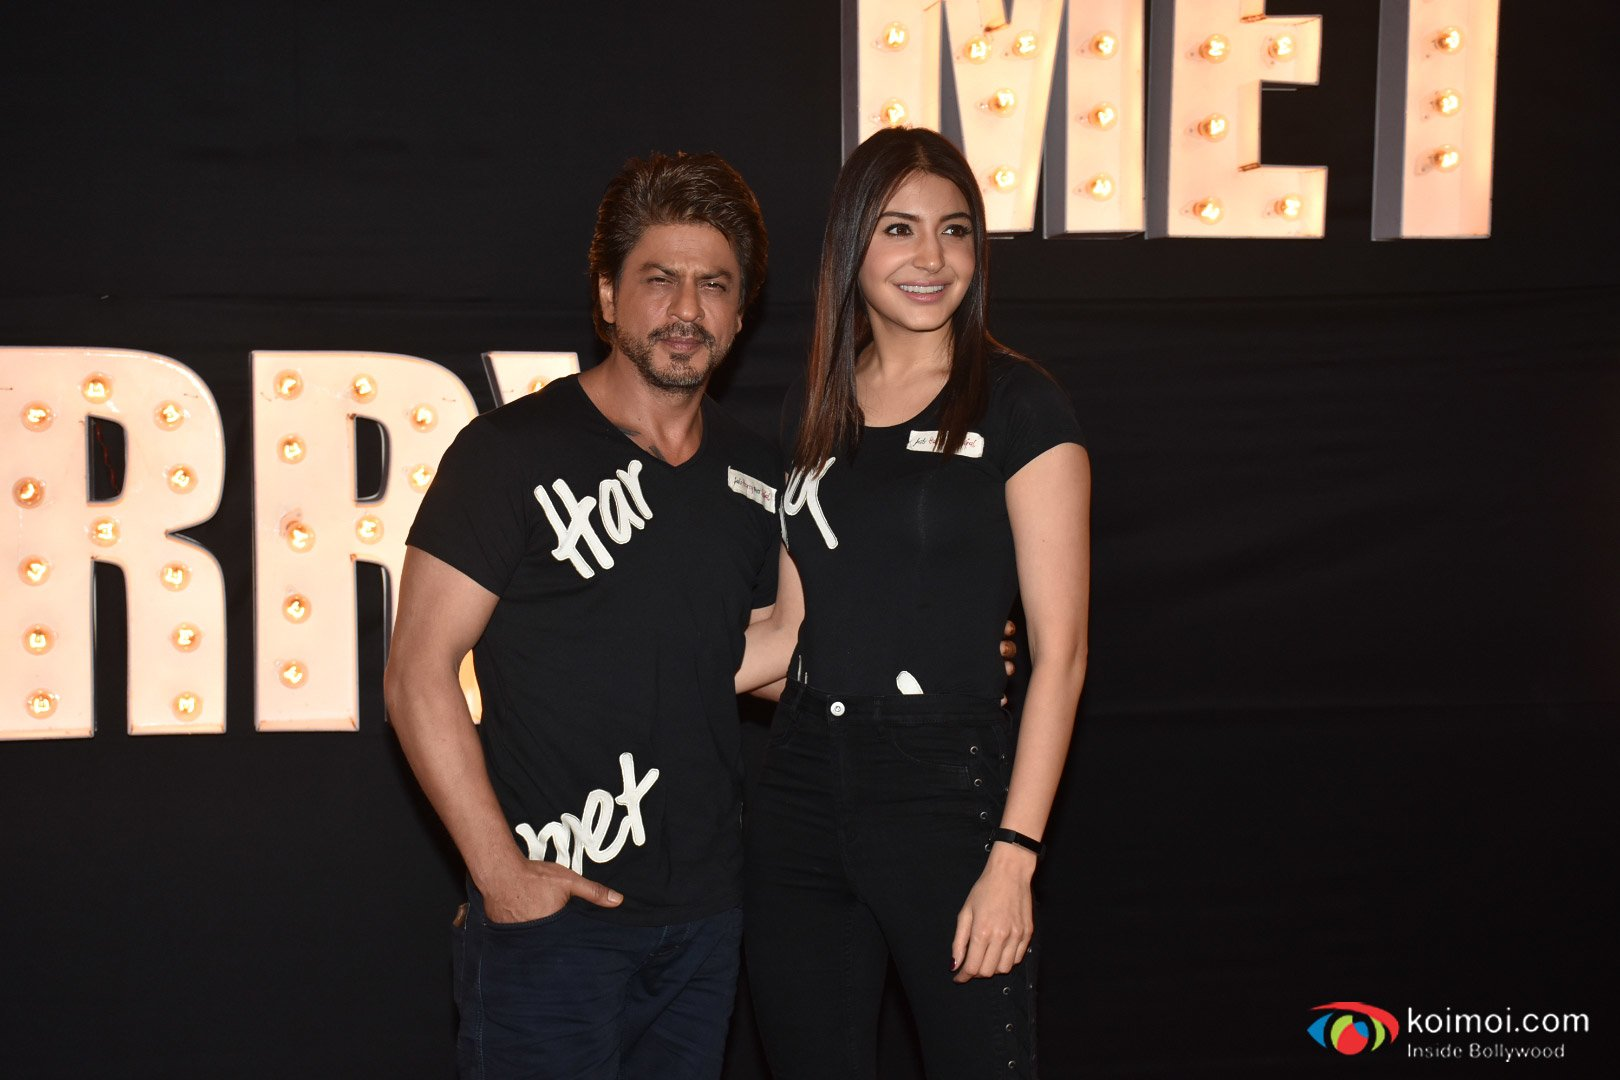 Shah Rukh and Anuskha Groove to the beat of Beech Beech Mein